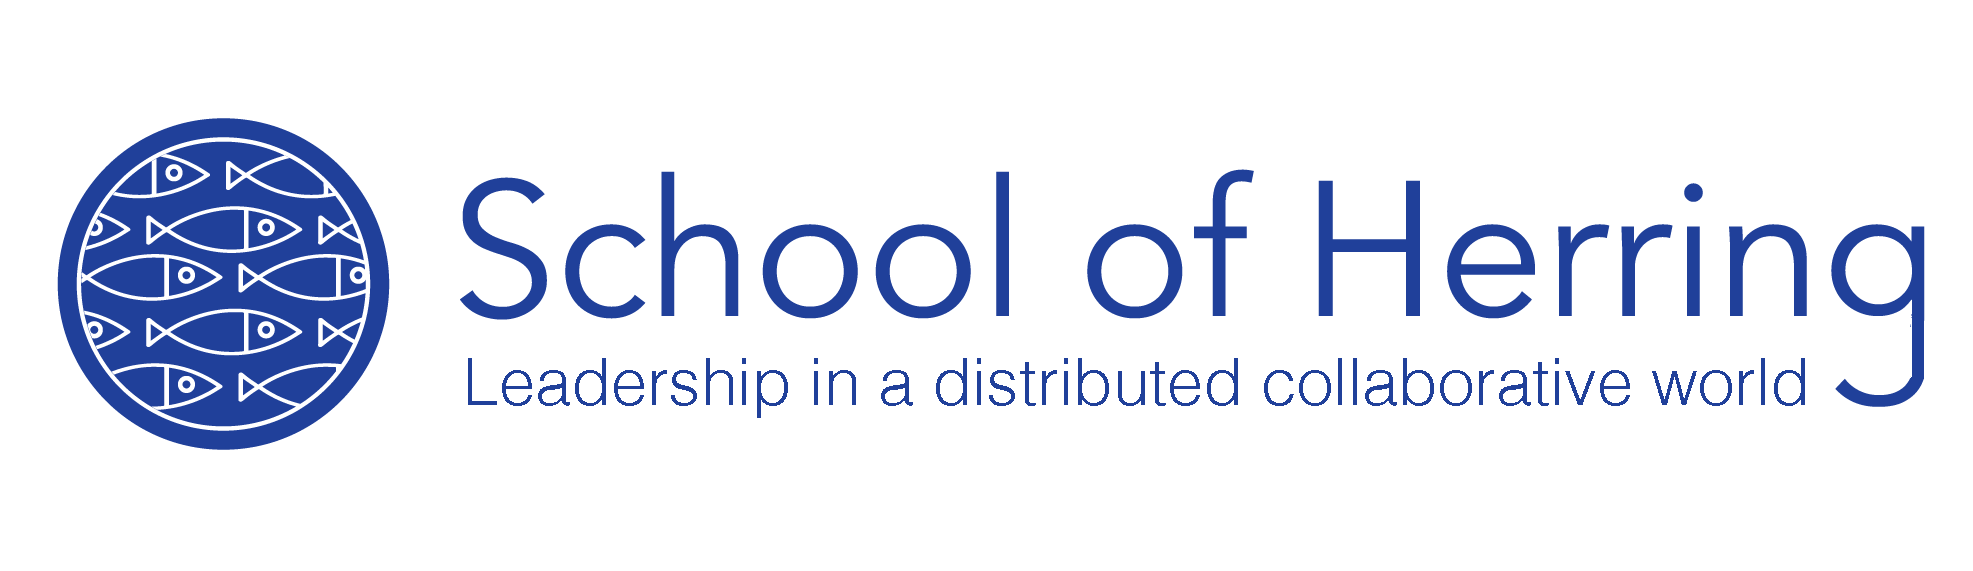 School of Herring Logo